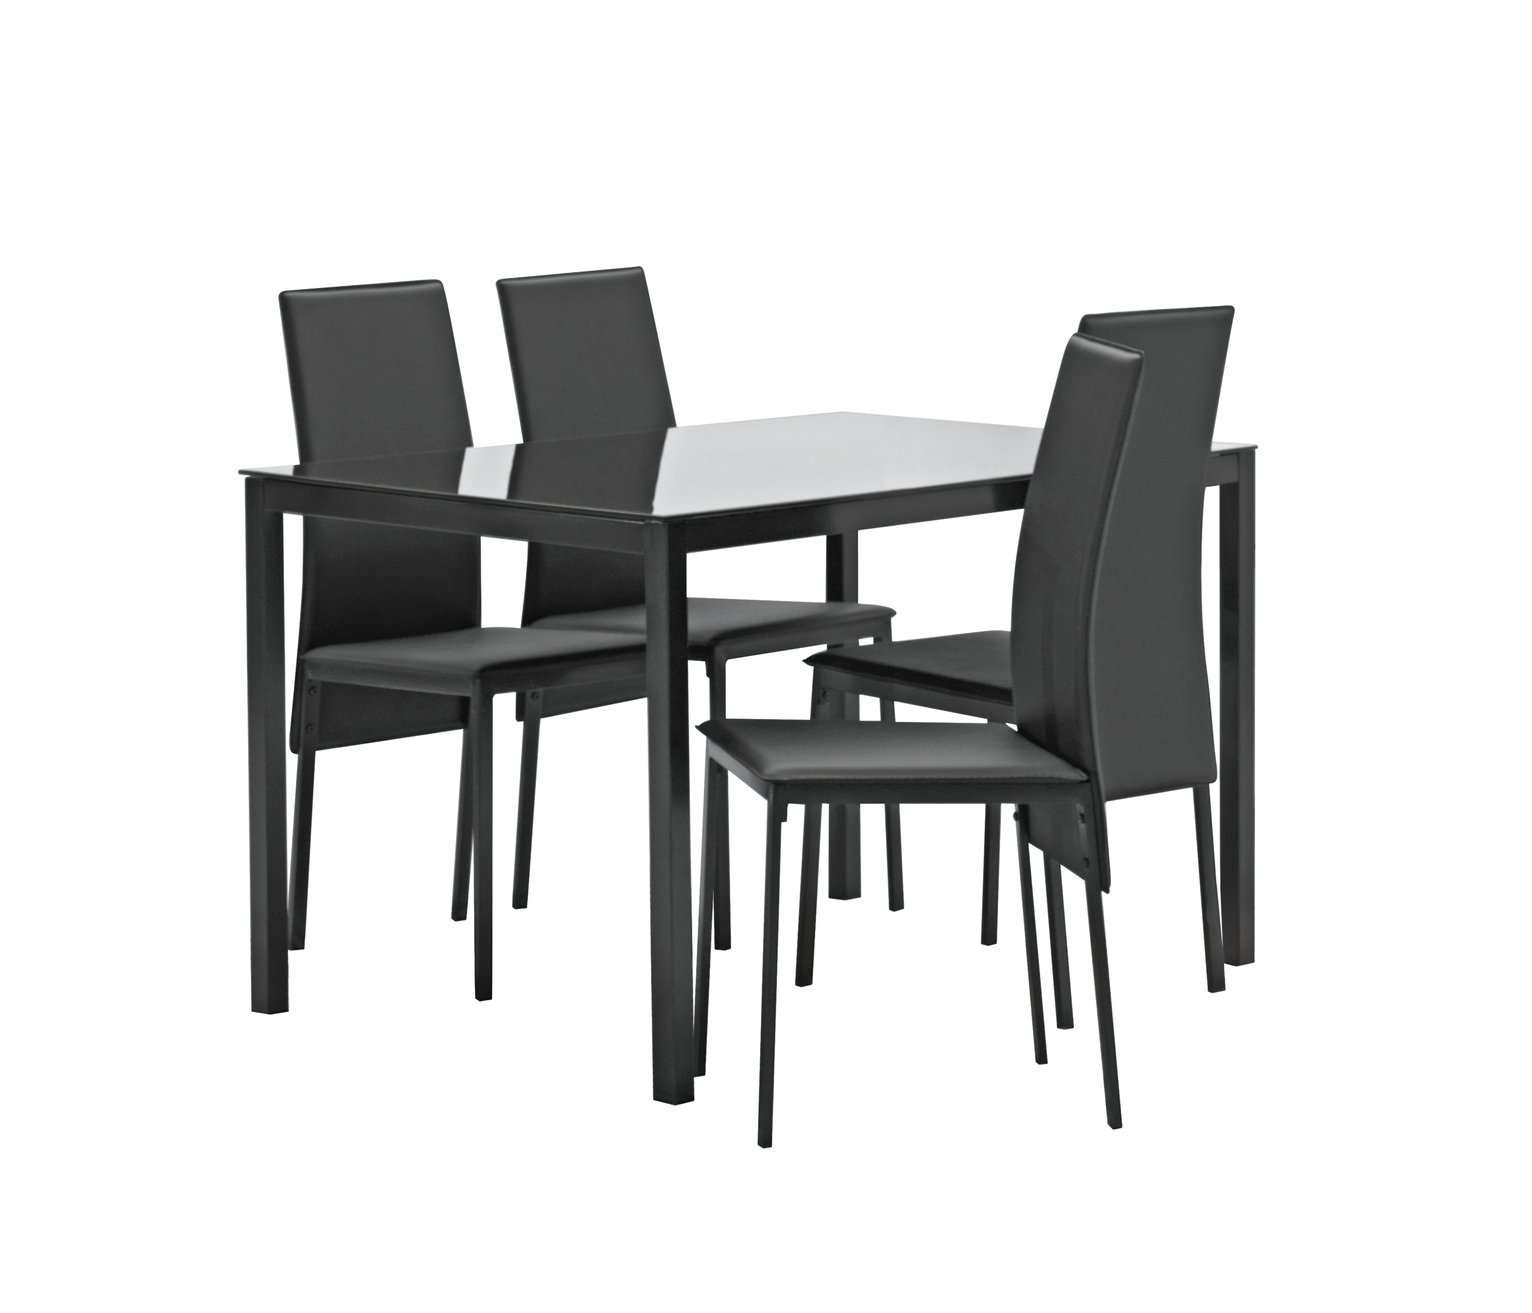 Argos Home Lido Glass Dining Table & 4 Black Chairs